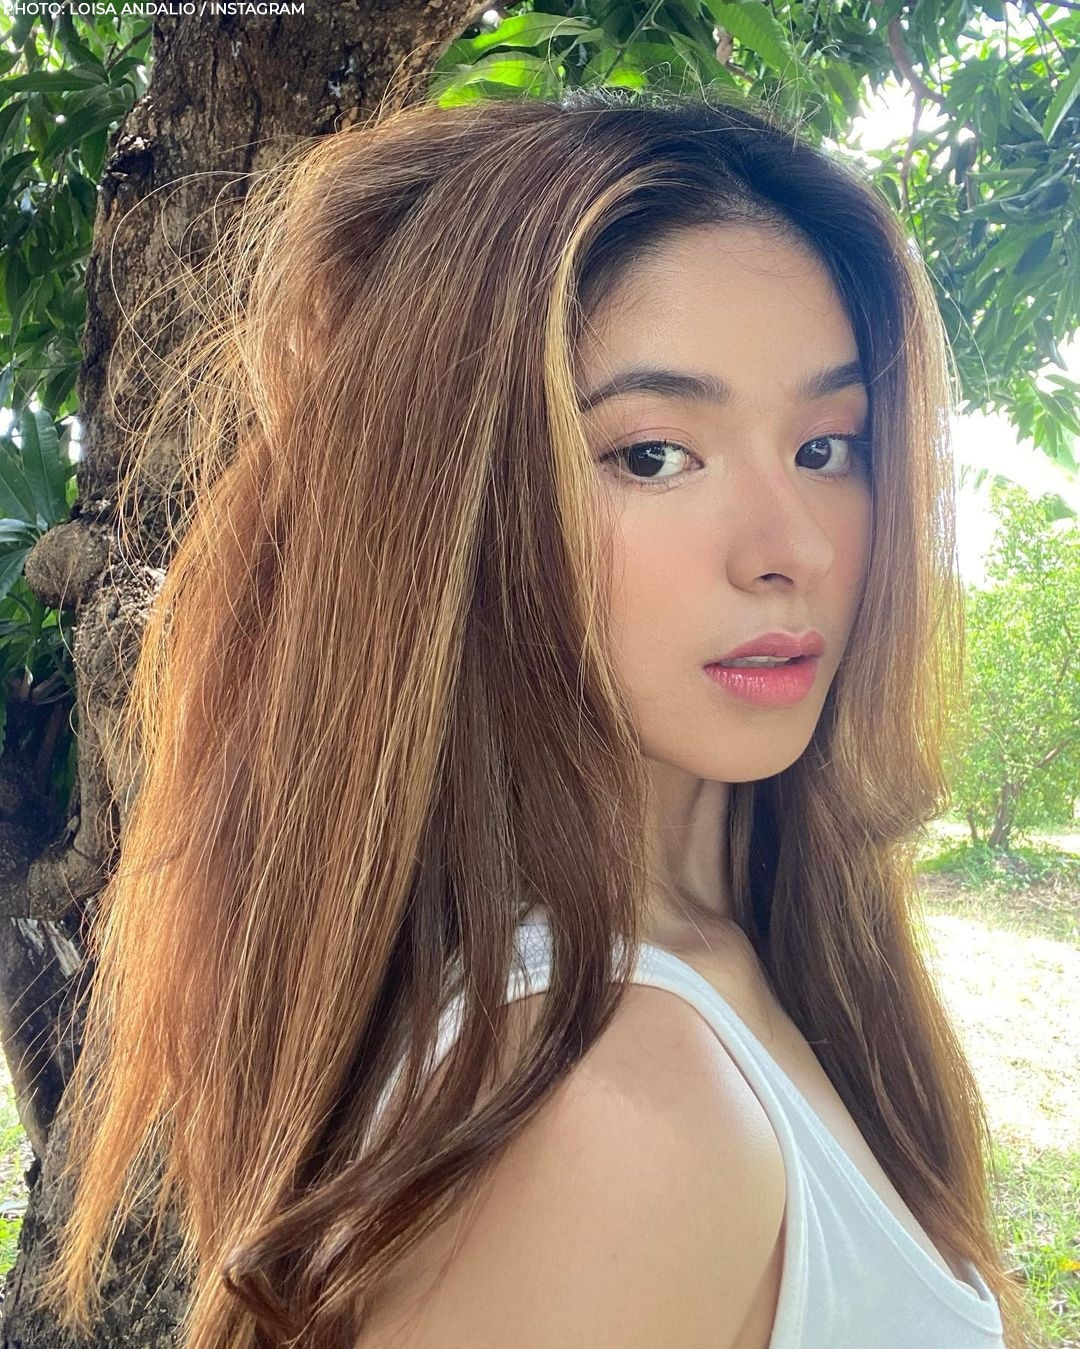 Loisa Andalio's effortless beauty